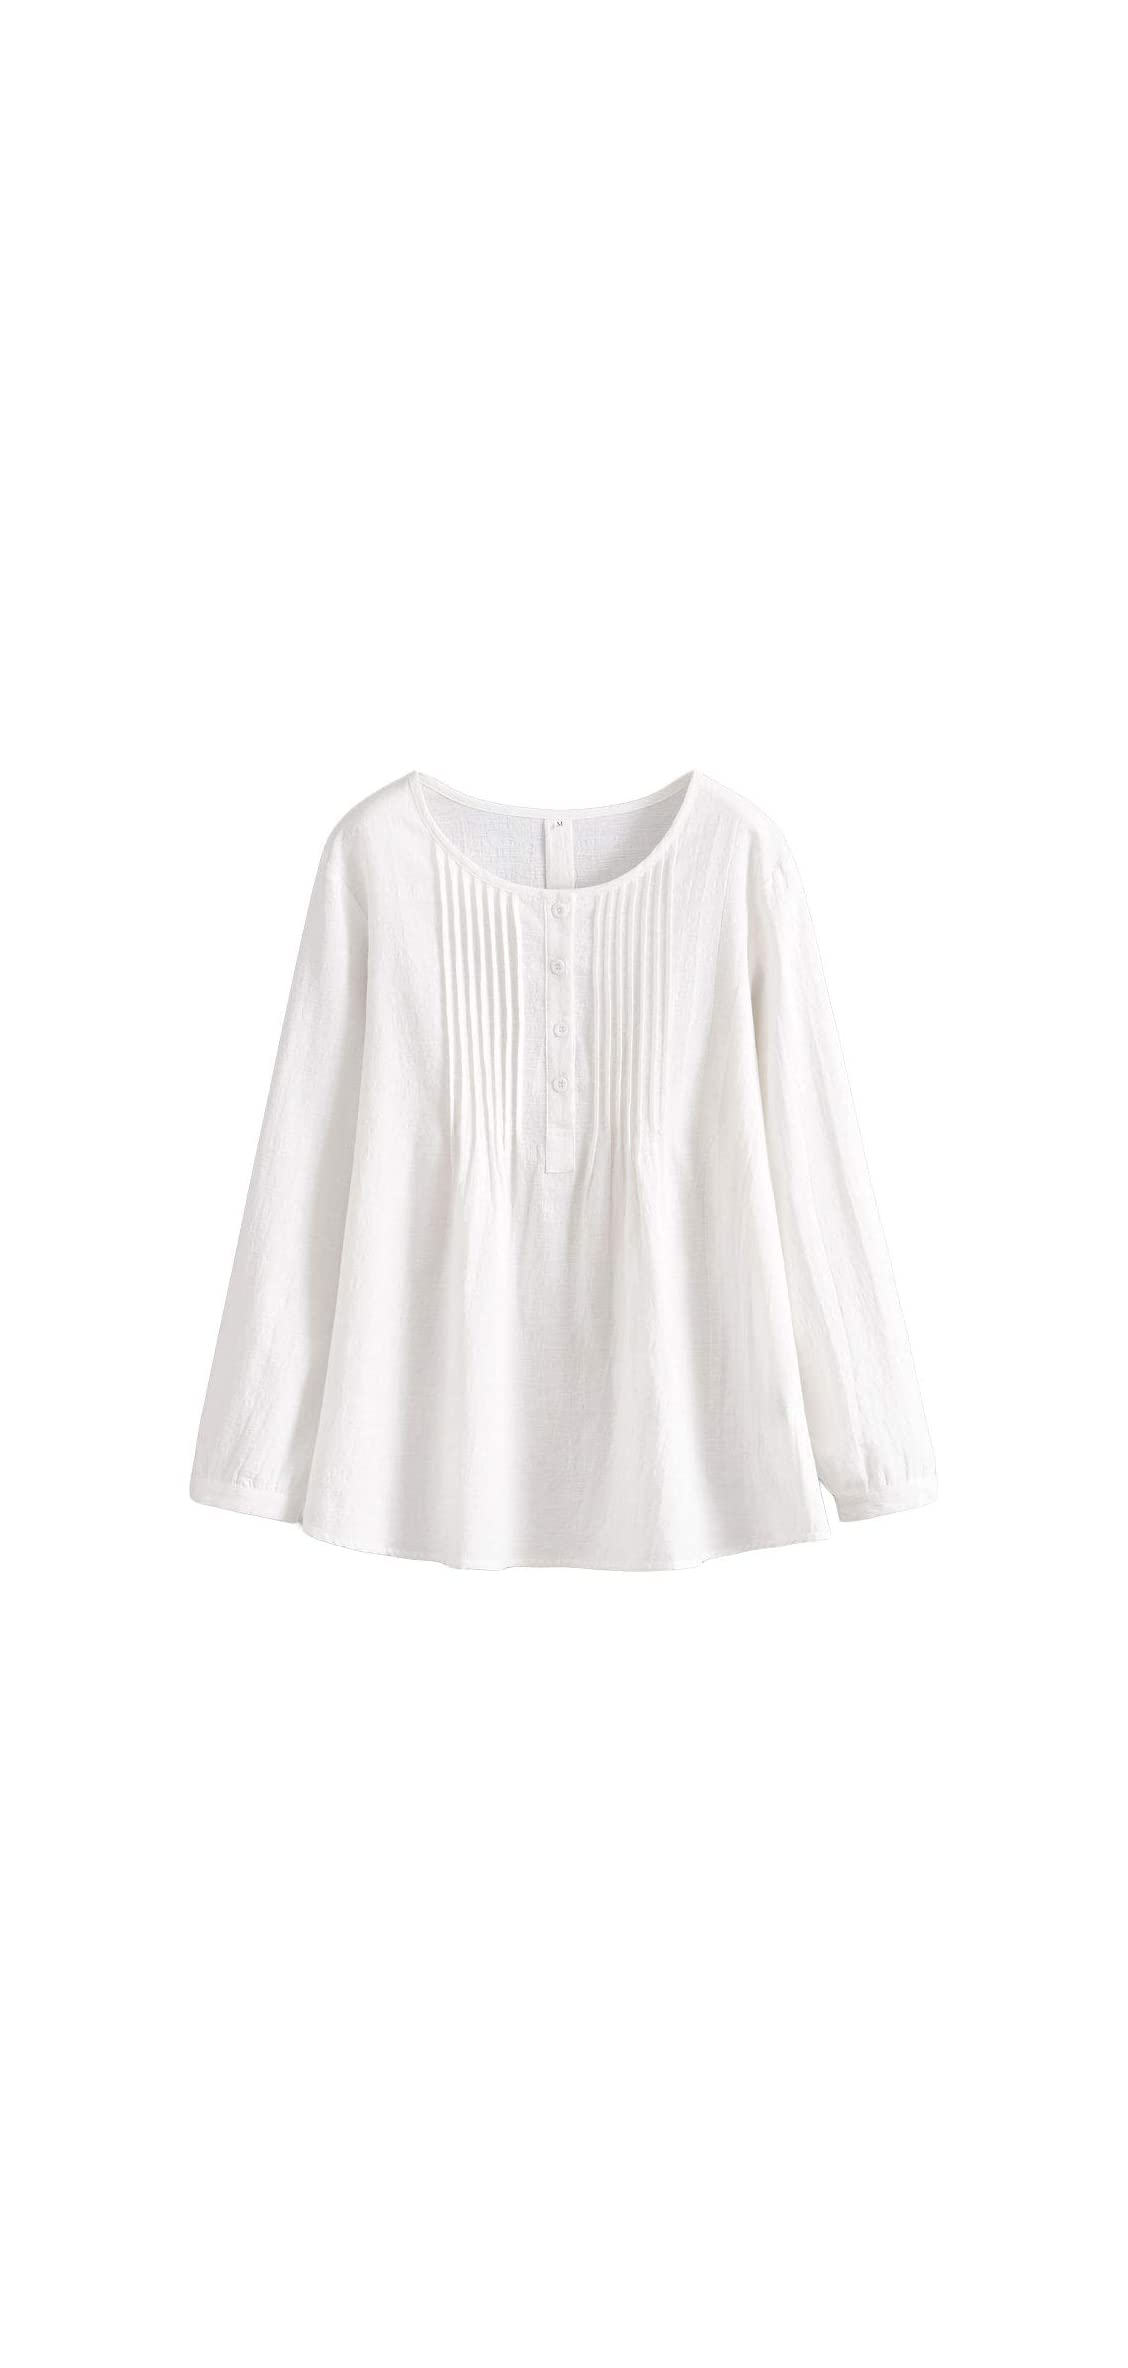 Women's Scoop Neck Pleated Blouse Solid Color Lovely